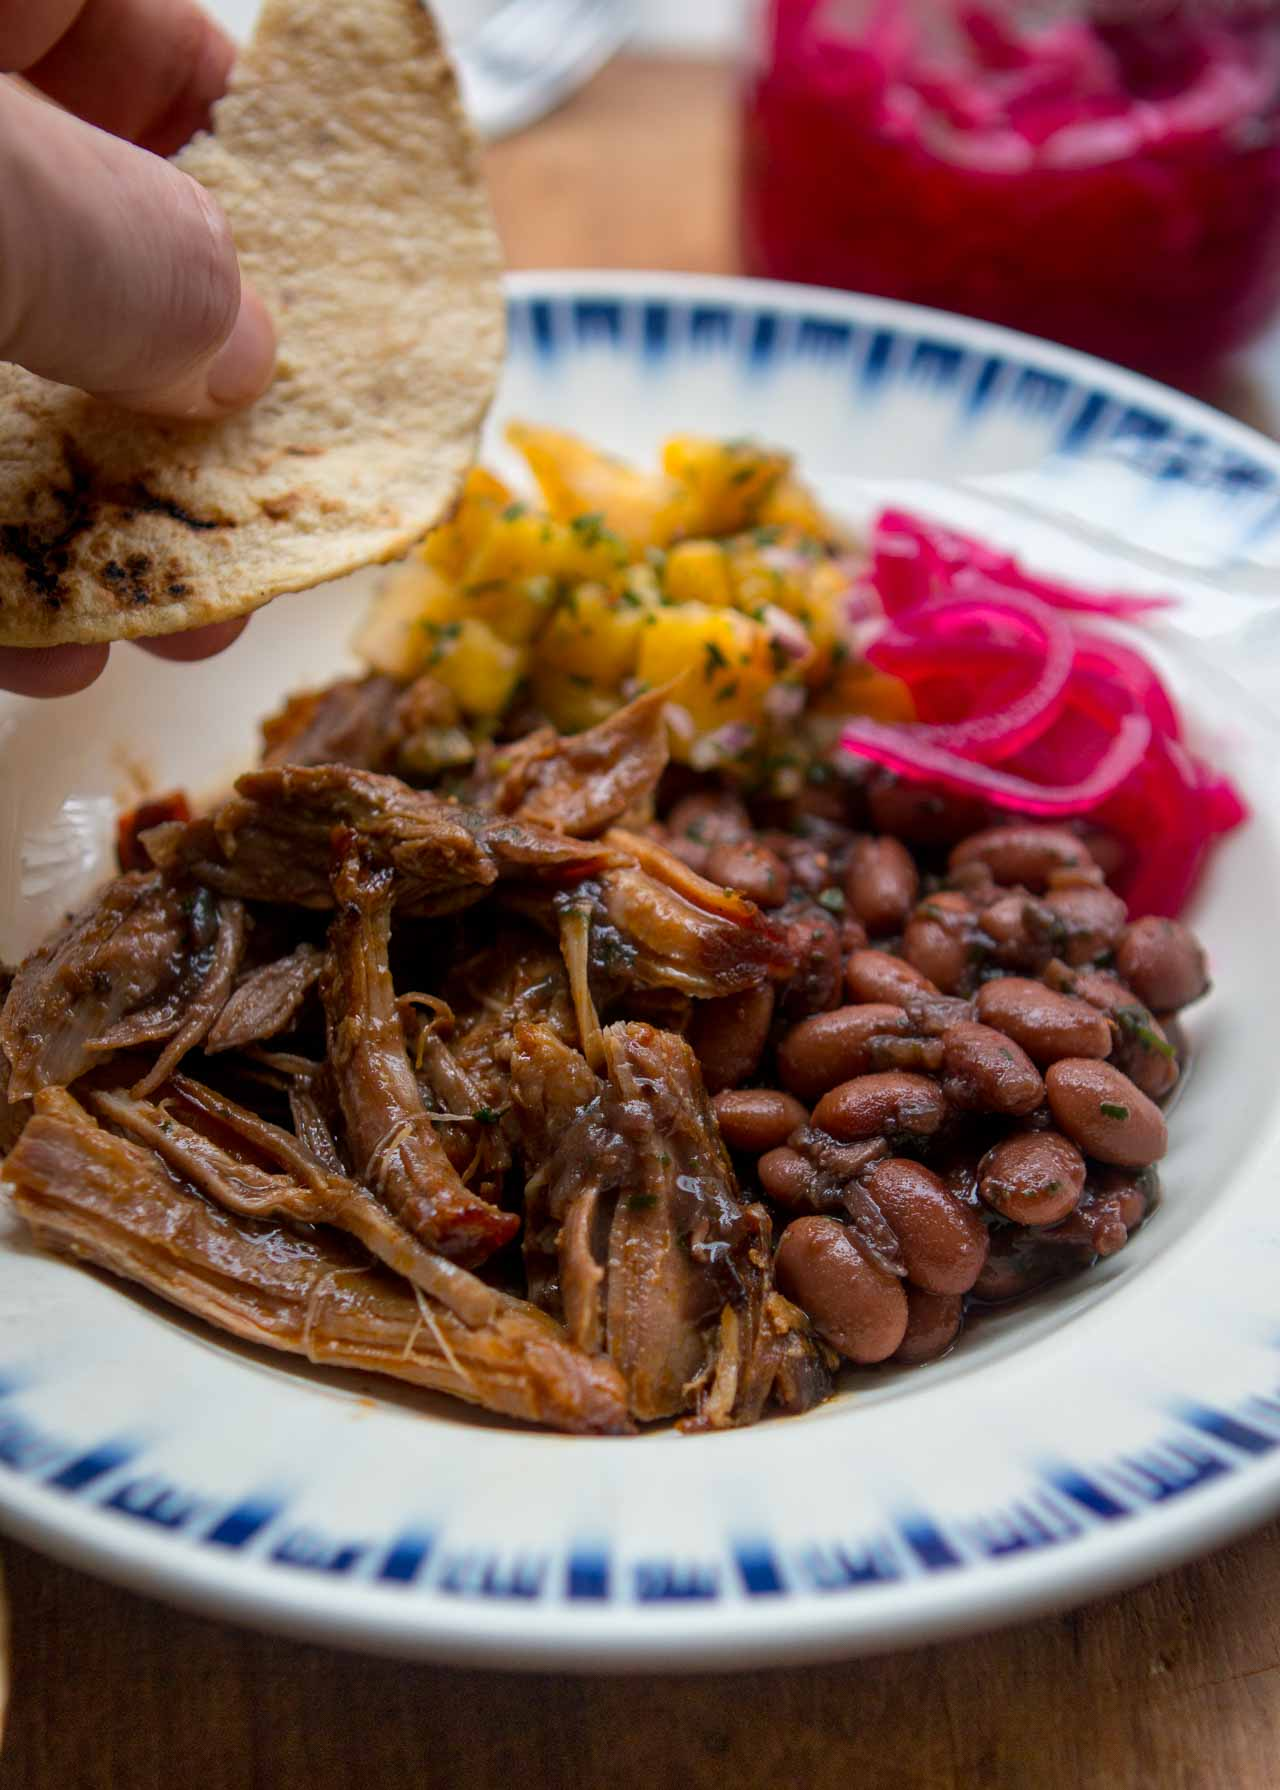 A one-pot meal that yields a generous pot of spicy, smoky long-cooked pork